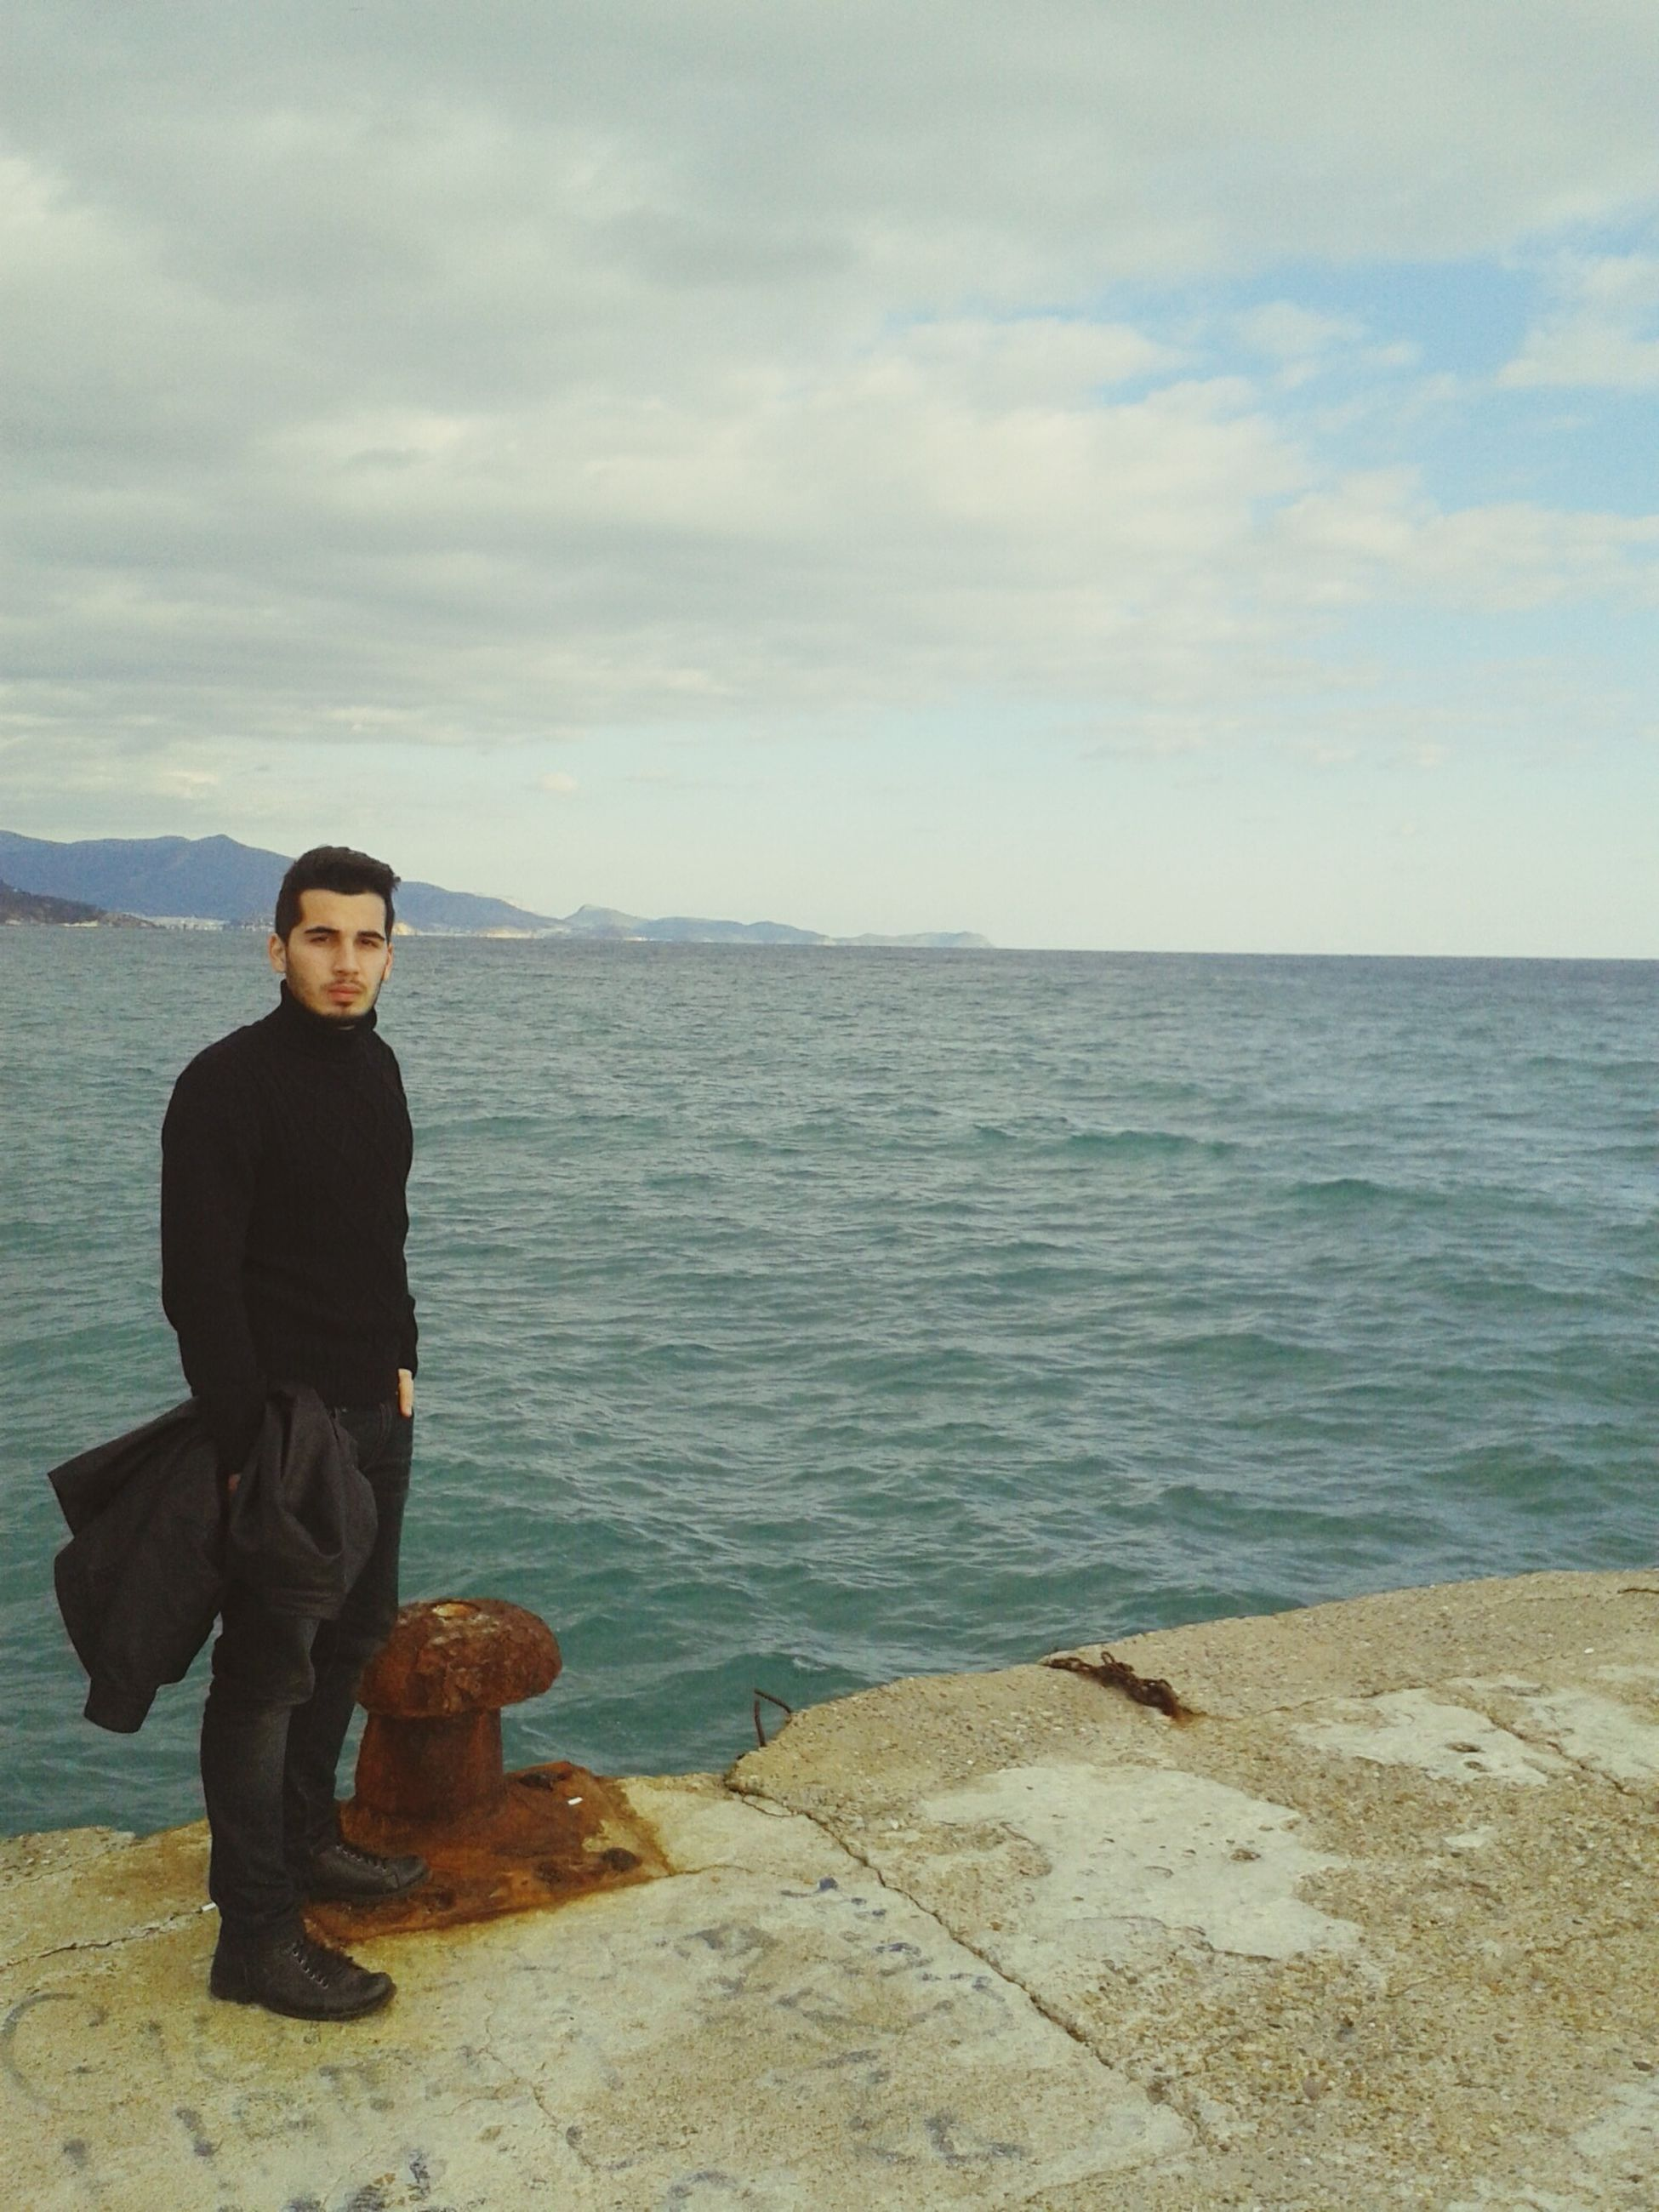 water, lifestyles, casual clothing, sea, leisure activity, standing, young adult, sky, person, full length, scenics, young men, beauty in nature, nature, tranquility, tranquil scene, cloud - sky